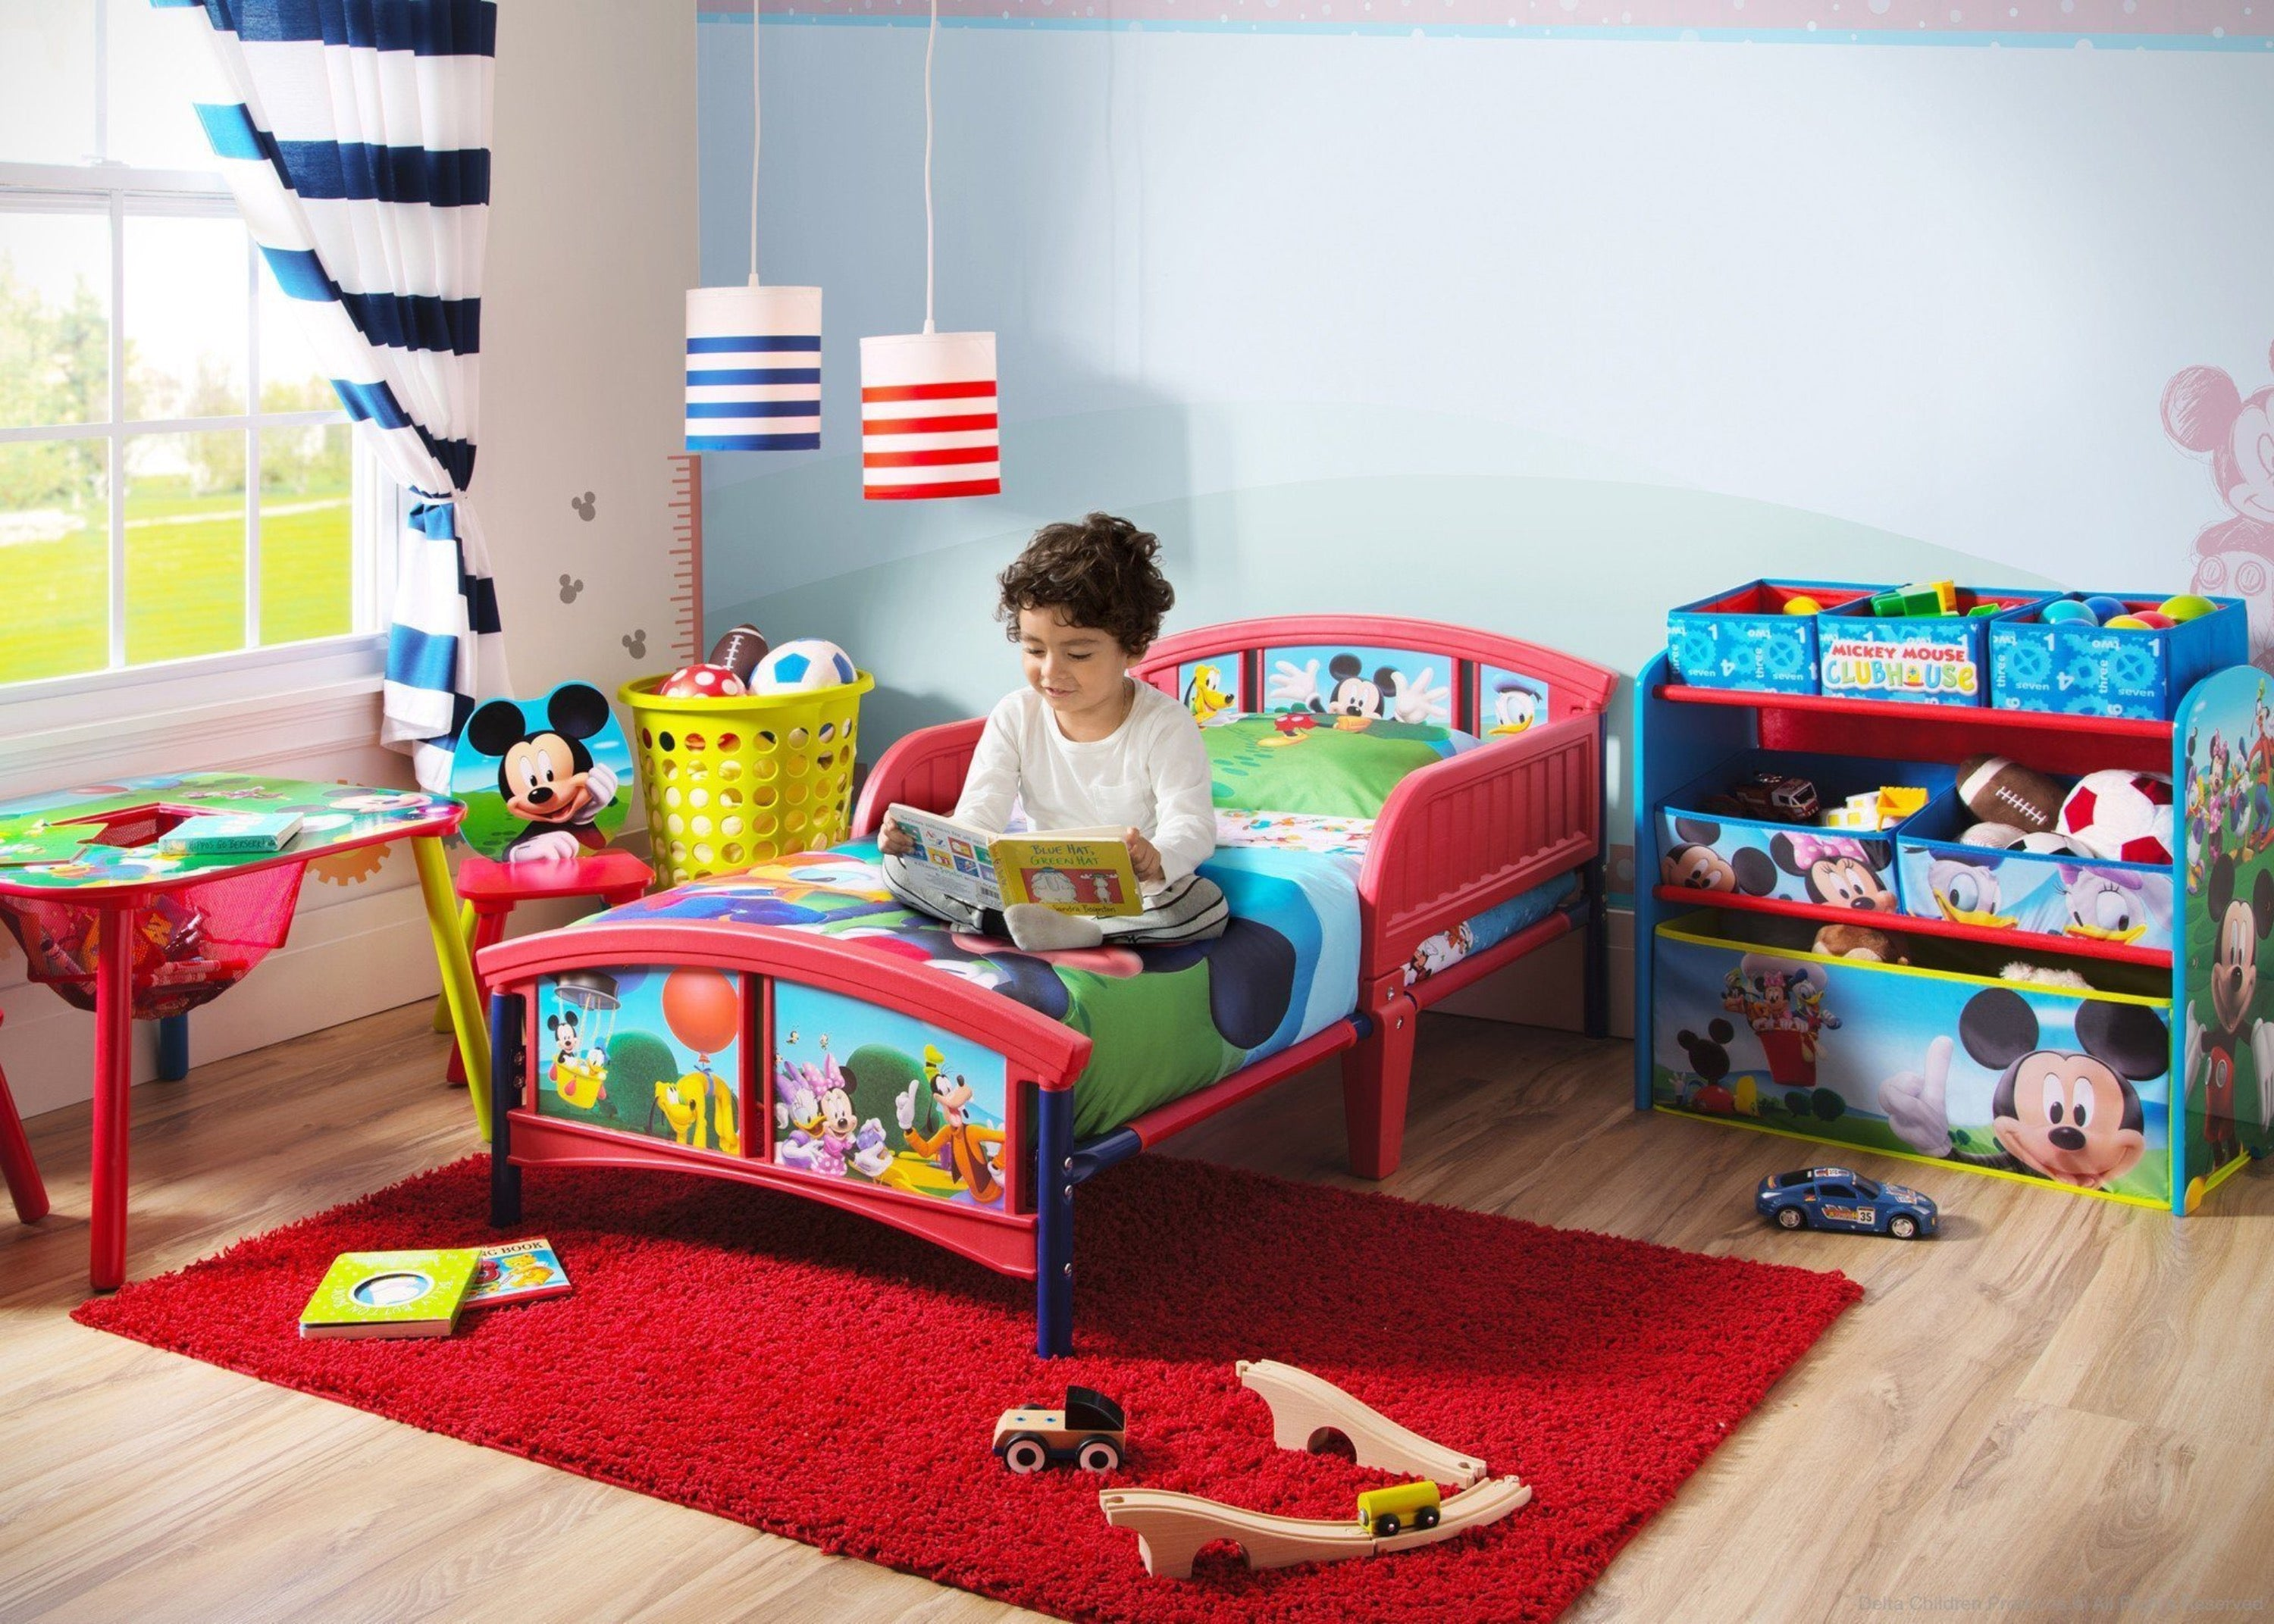 Mickey mouse plastic toddler bed delta children for Mueble juguetes